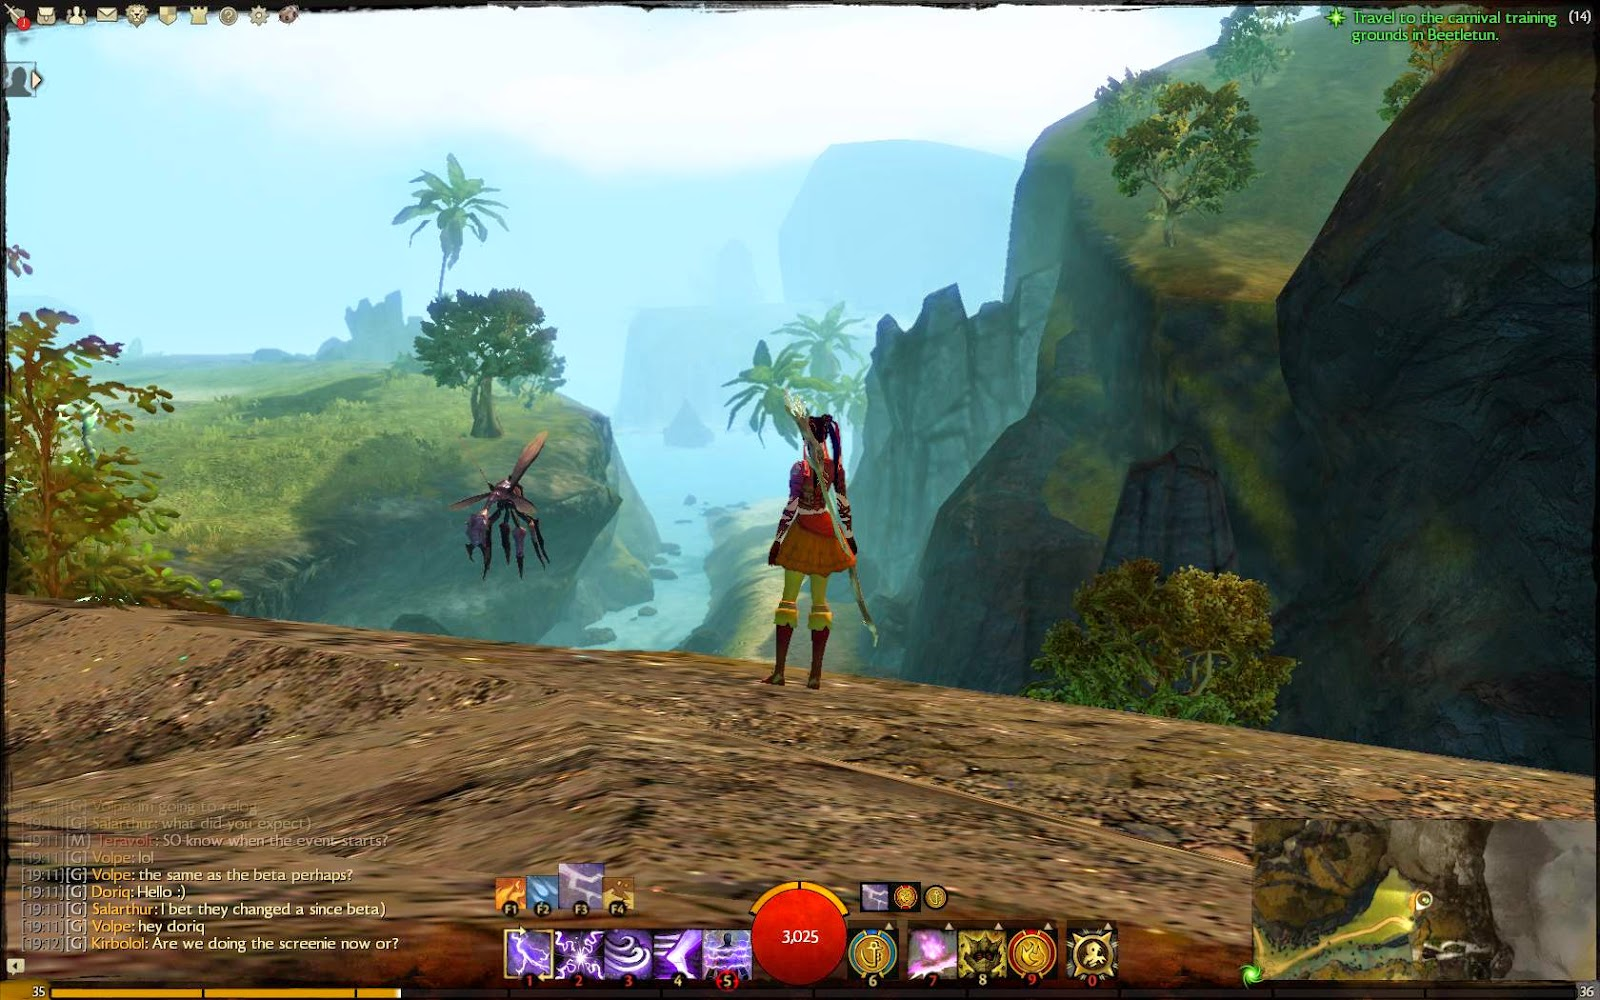 MMORPG ability to jump and run